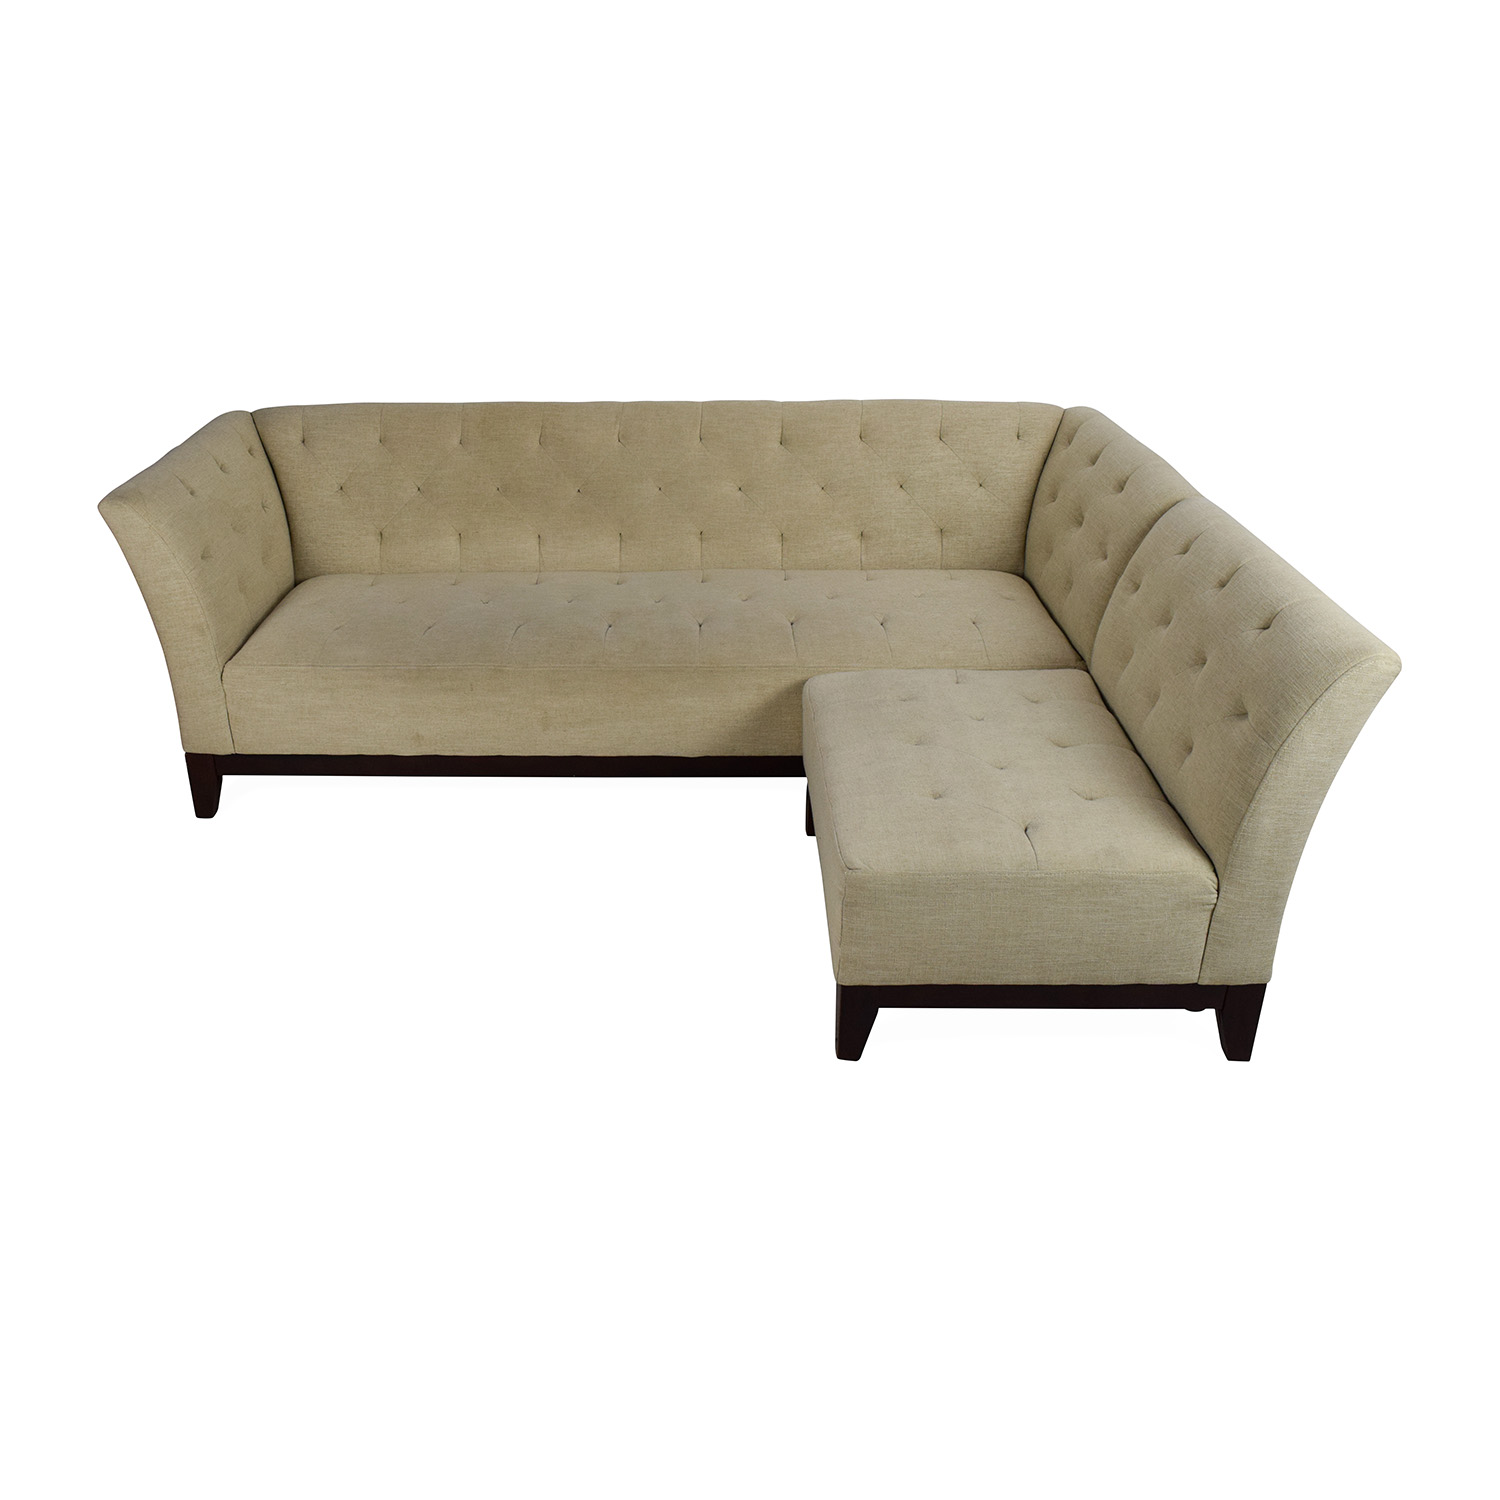 buy Macys Tufted Sofa With Modular Chaise Macys Sofas